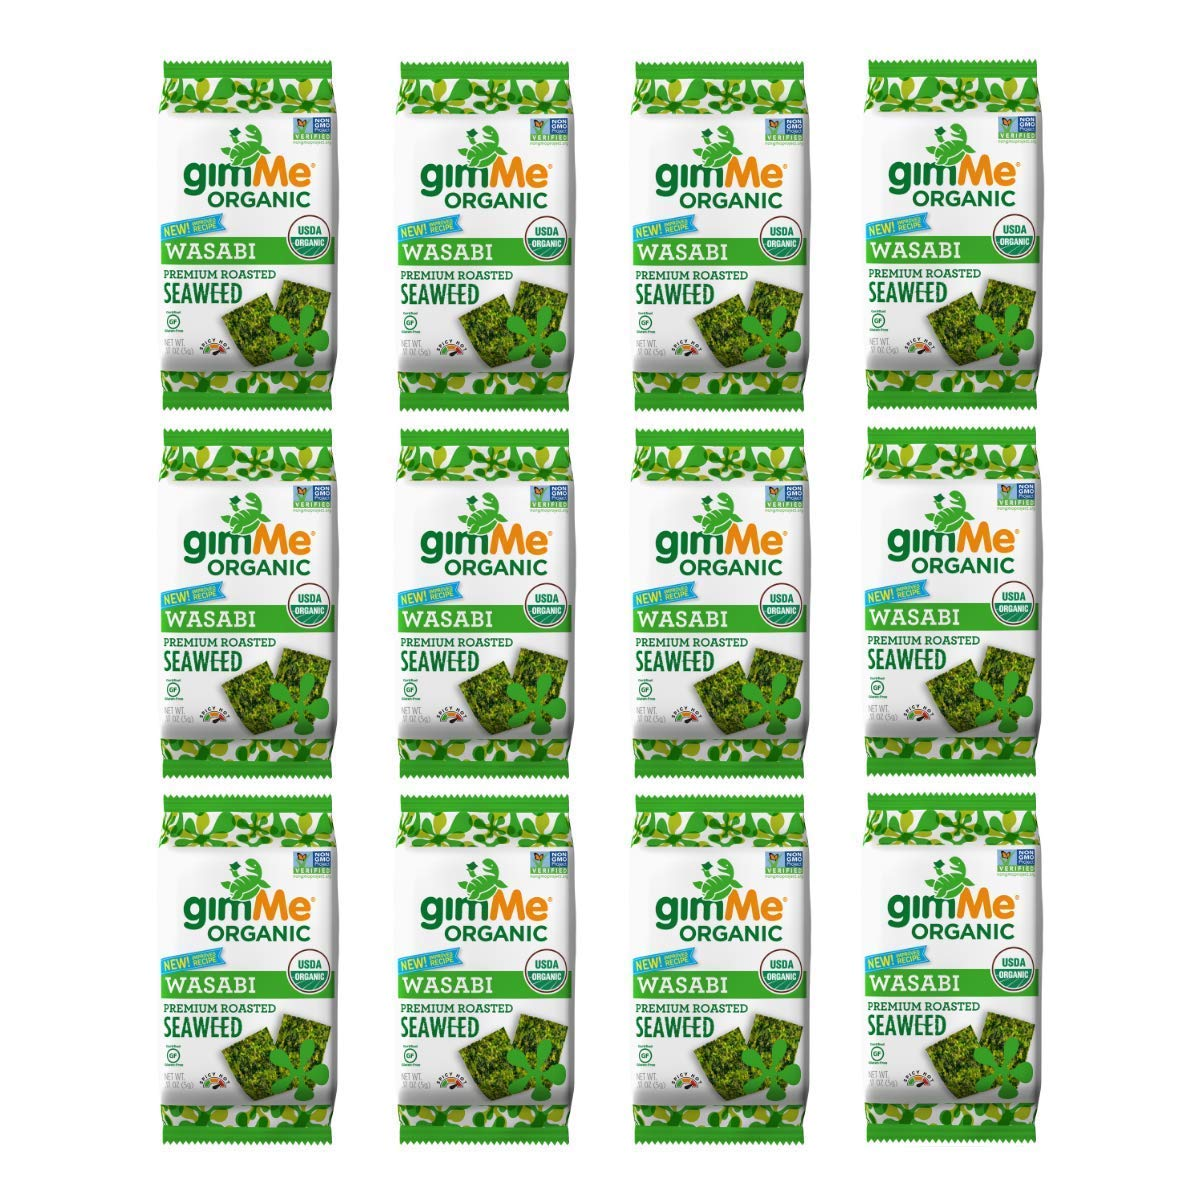 gimMe Organic Roasted Seaweed - Wasabi - 12 Count - Keto, Vegan, Gluten Free - Great Source of Iodine and Omega 3's - Healthy On-The-Go Snack for Kids & Adults